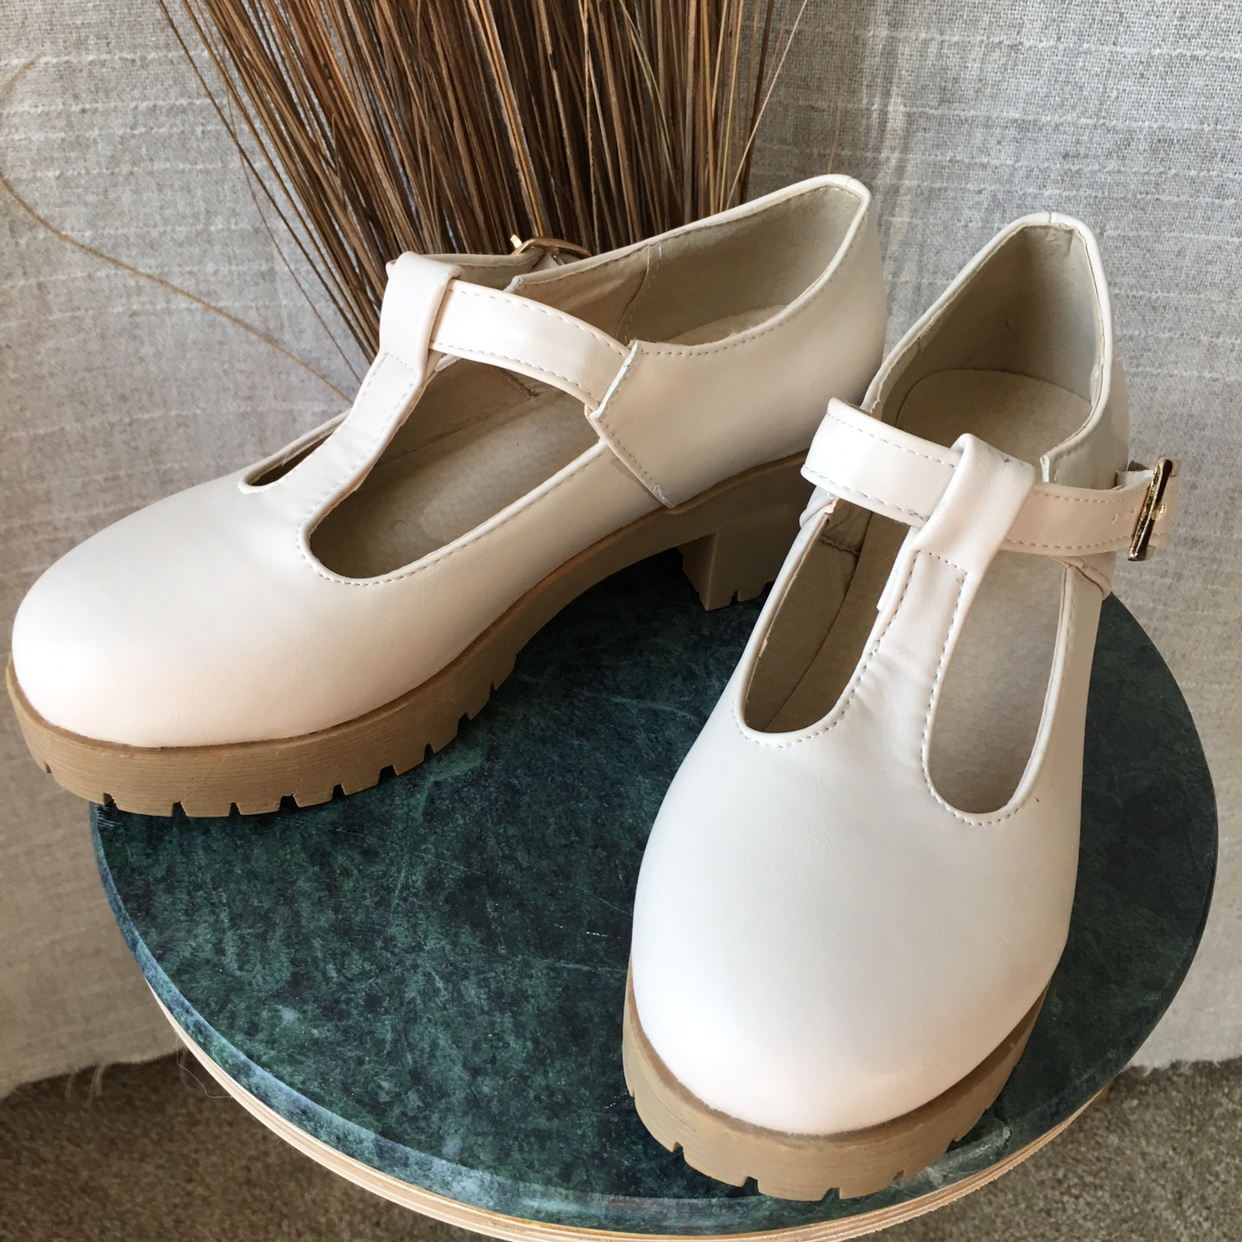 24+ Baby Doll Shoes For Women Images